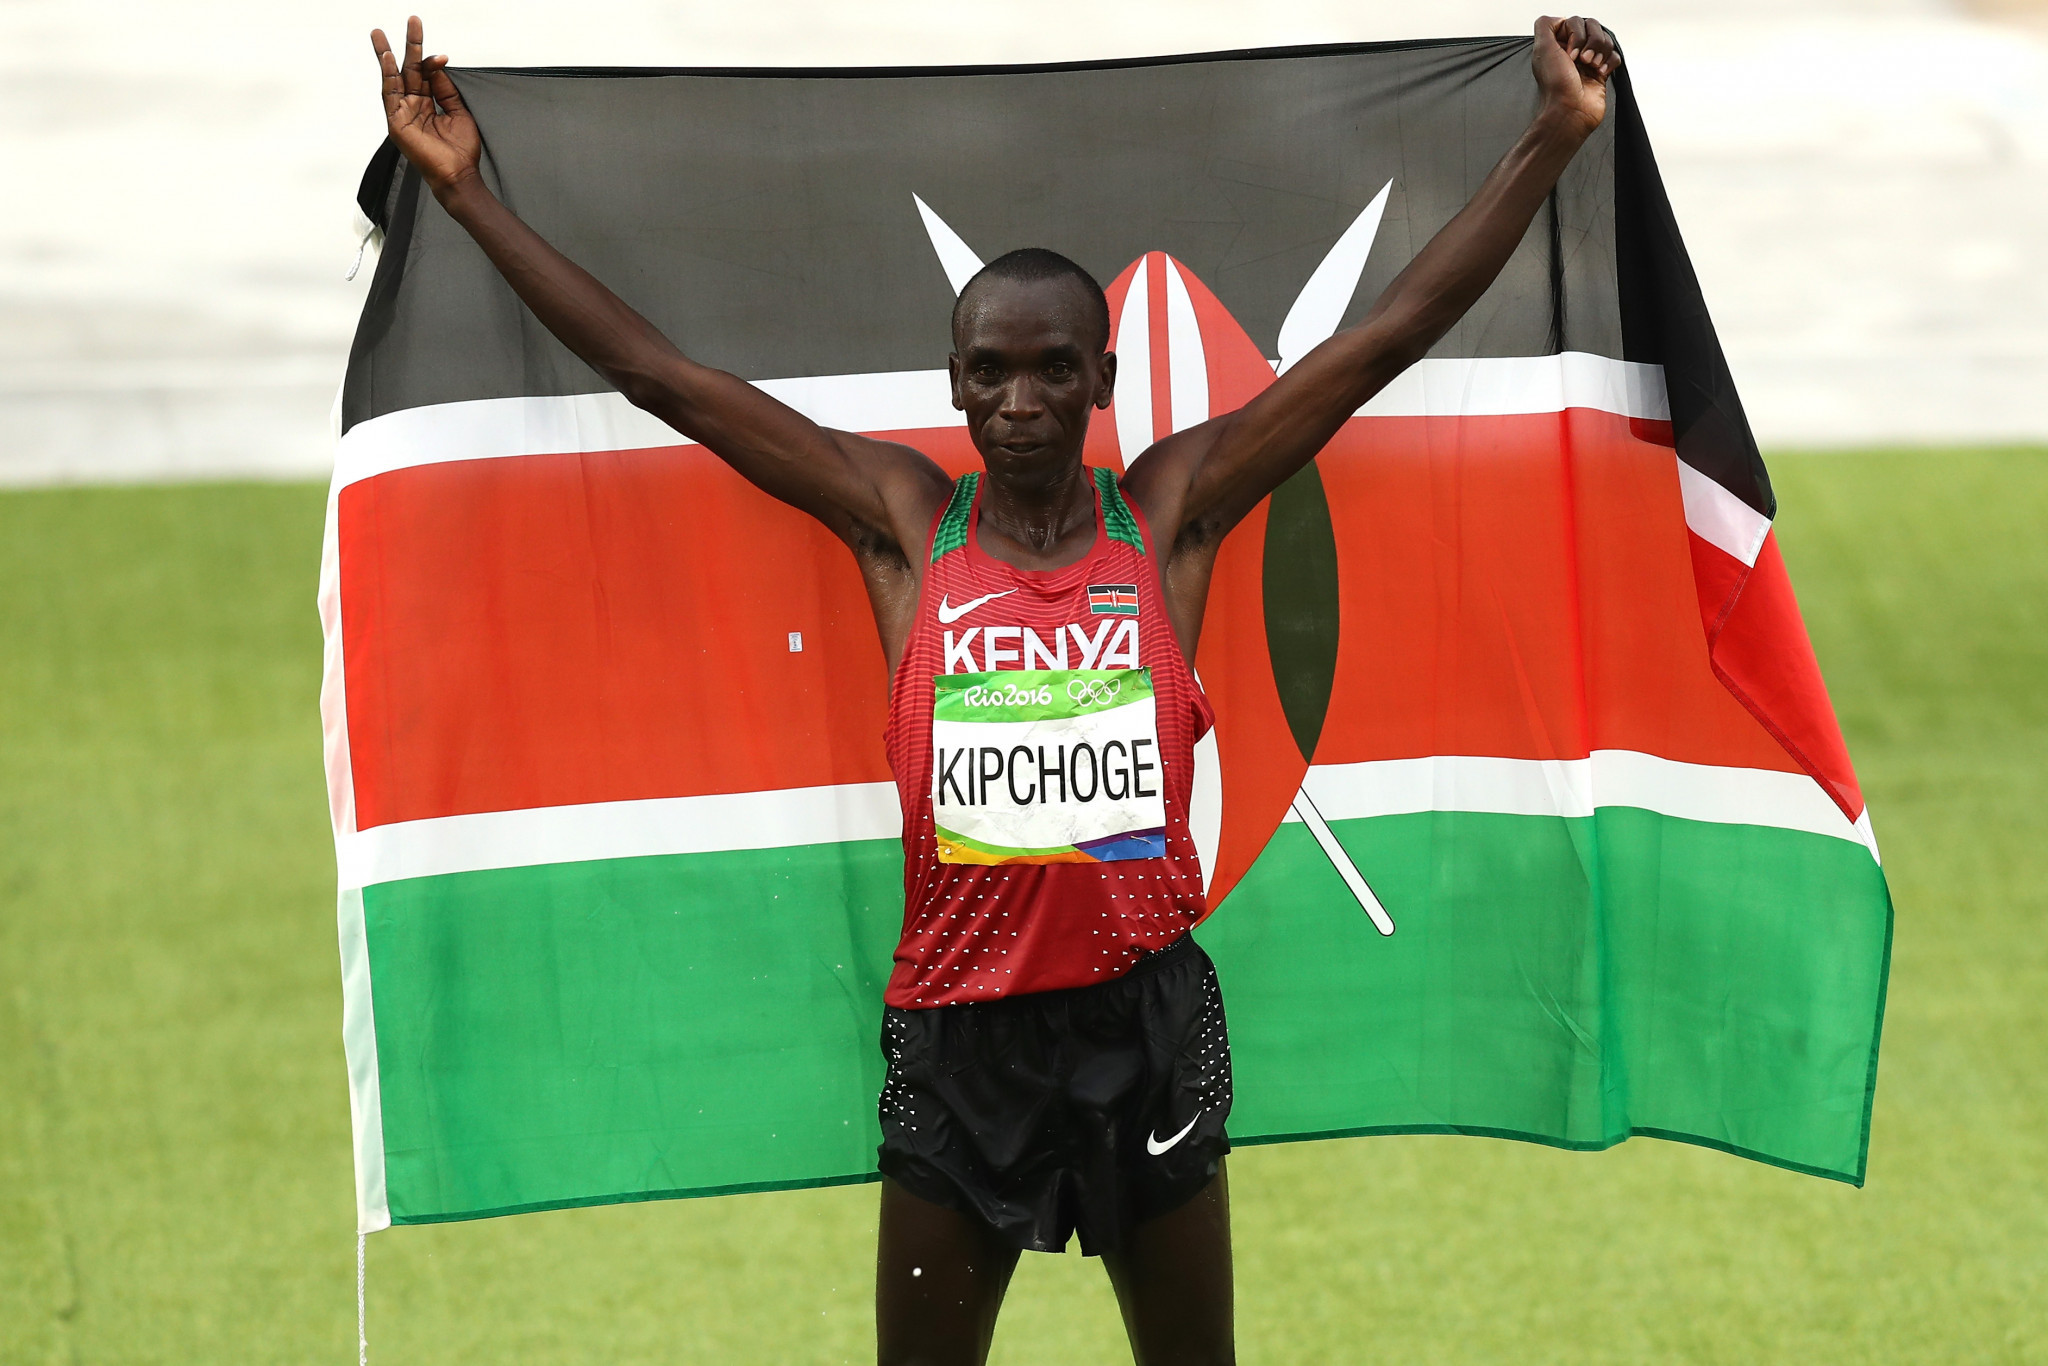 Kenyan NOC offers financial backing to Kipchoge and company after marathon team selected